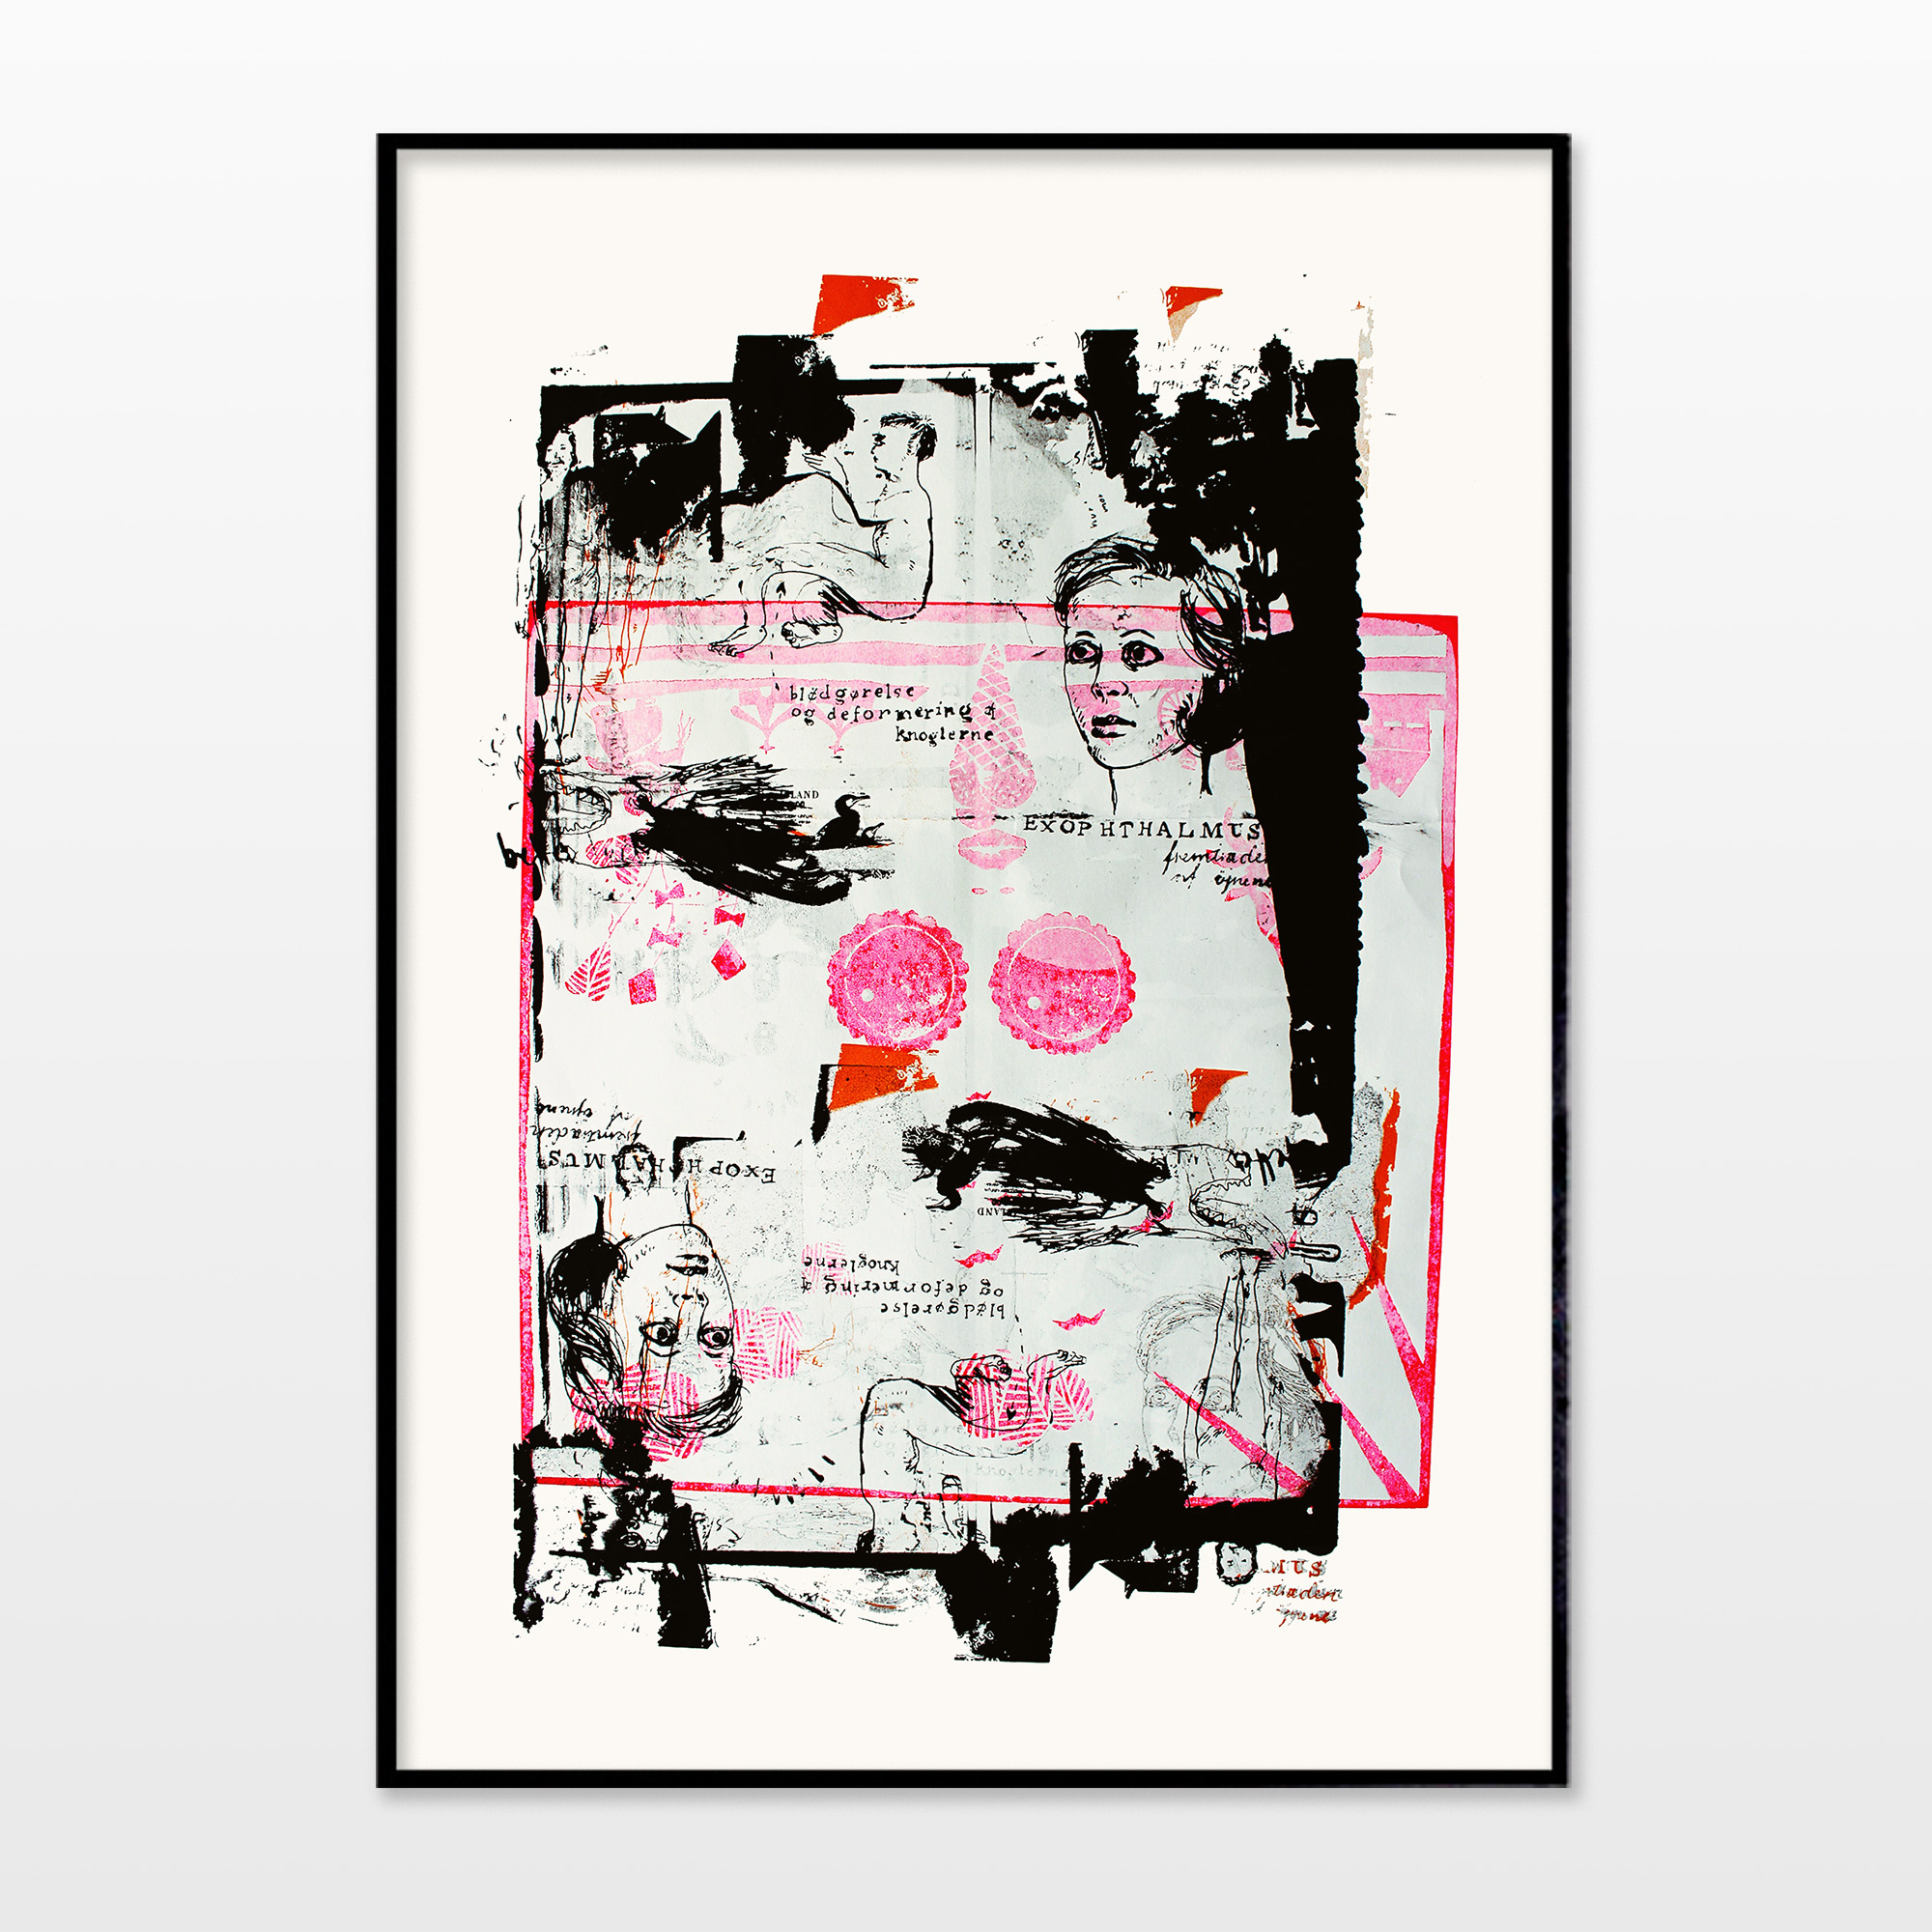 posters-prints, giclee-print, abstract, figurative, portraiture, bodies, people, pets, black, pink, white, ink, paper, beautiful, contemporary-art, copenhagen, danish, decorative, design, dogs, faces, interior, interior-design, modern, modern-art, nordic, women, Buy original high quality art. Paintings, drawings, limited edition prints & posters by talented artists.